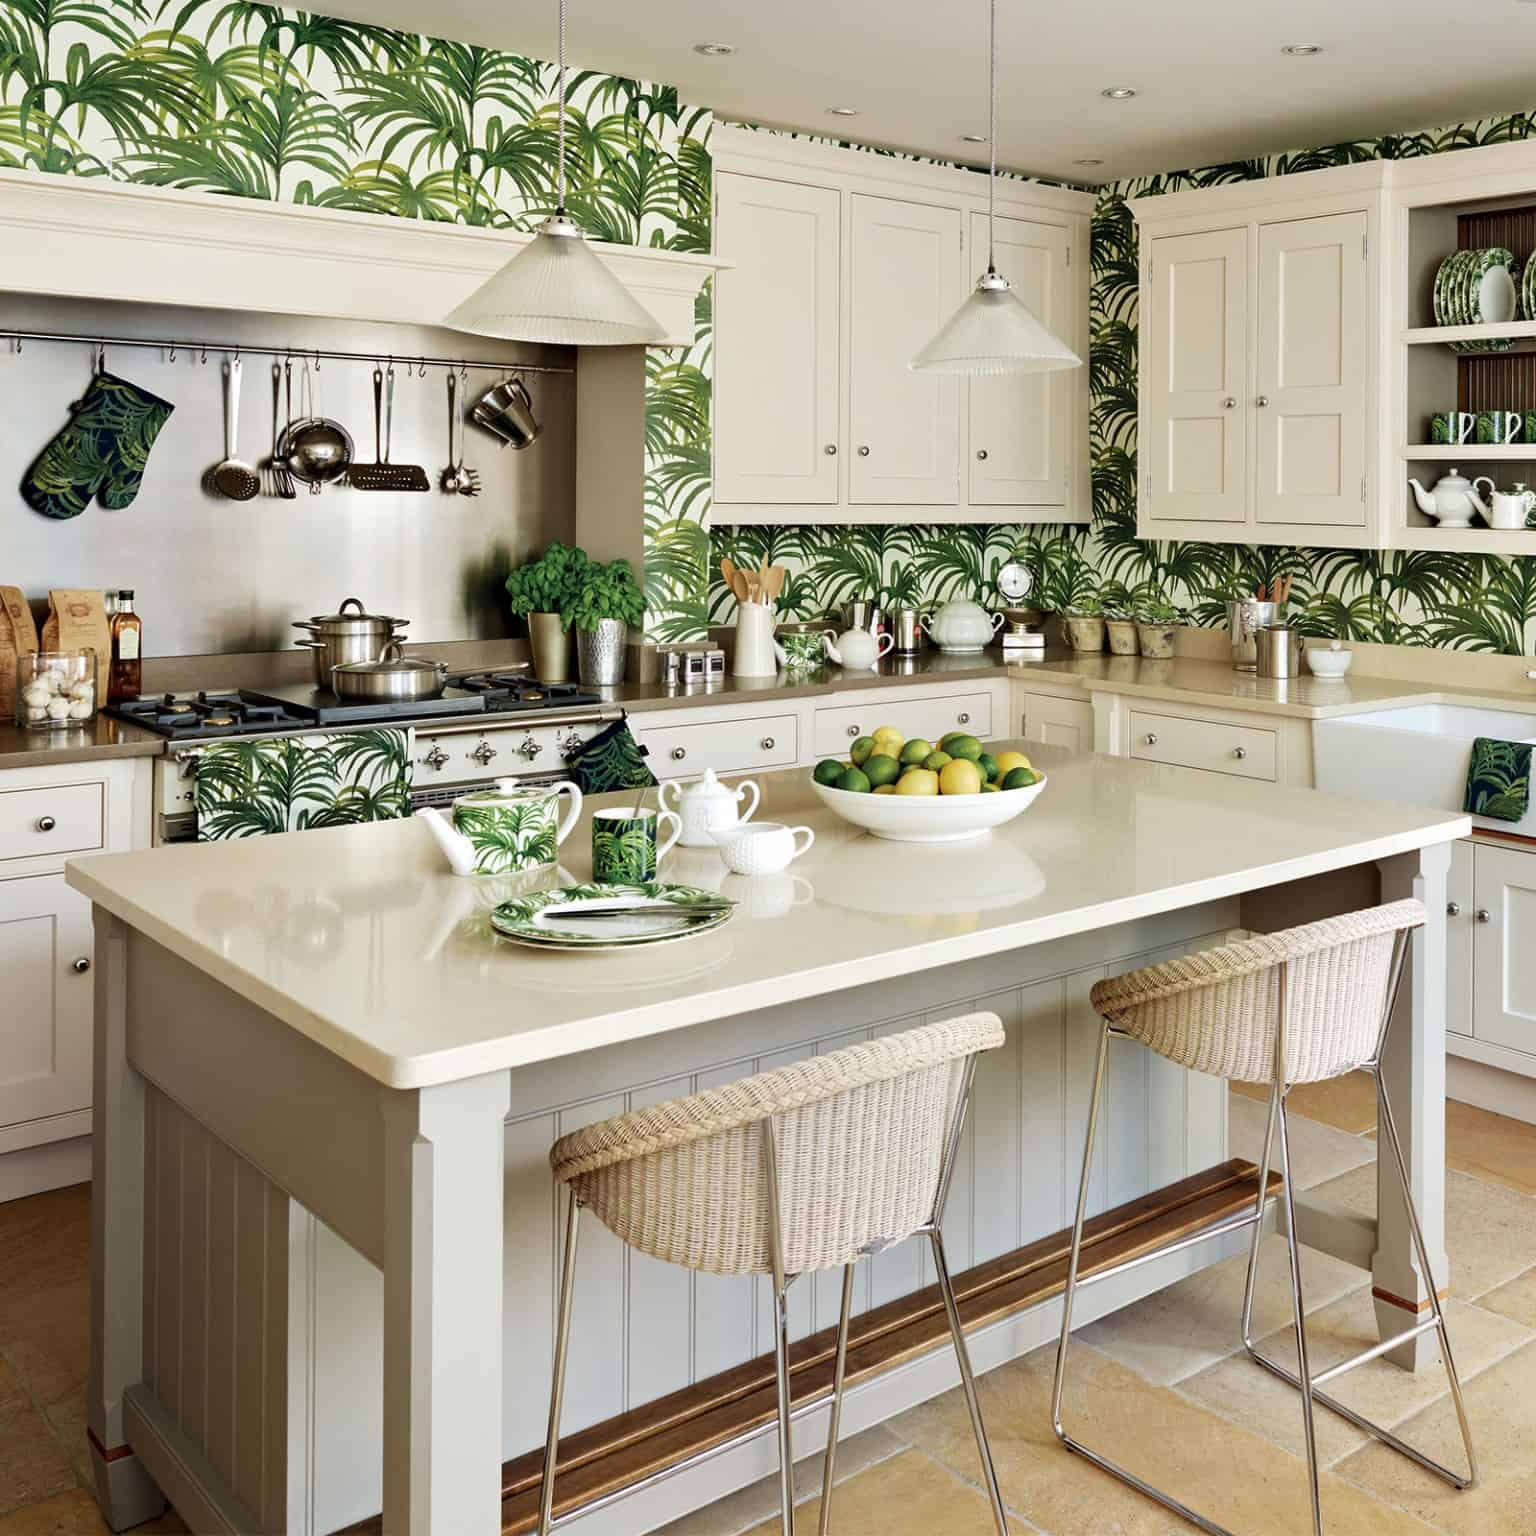 green kitchen wallpaper